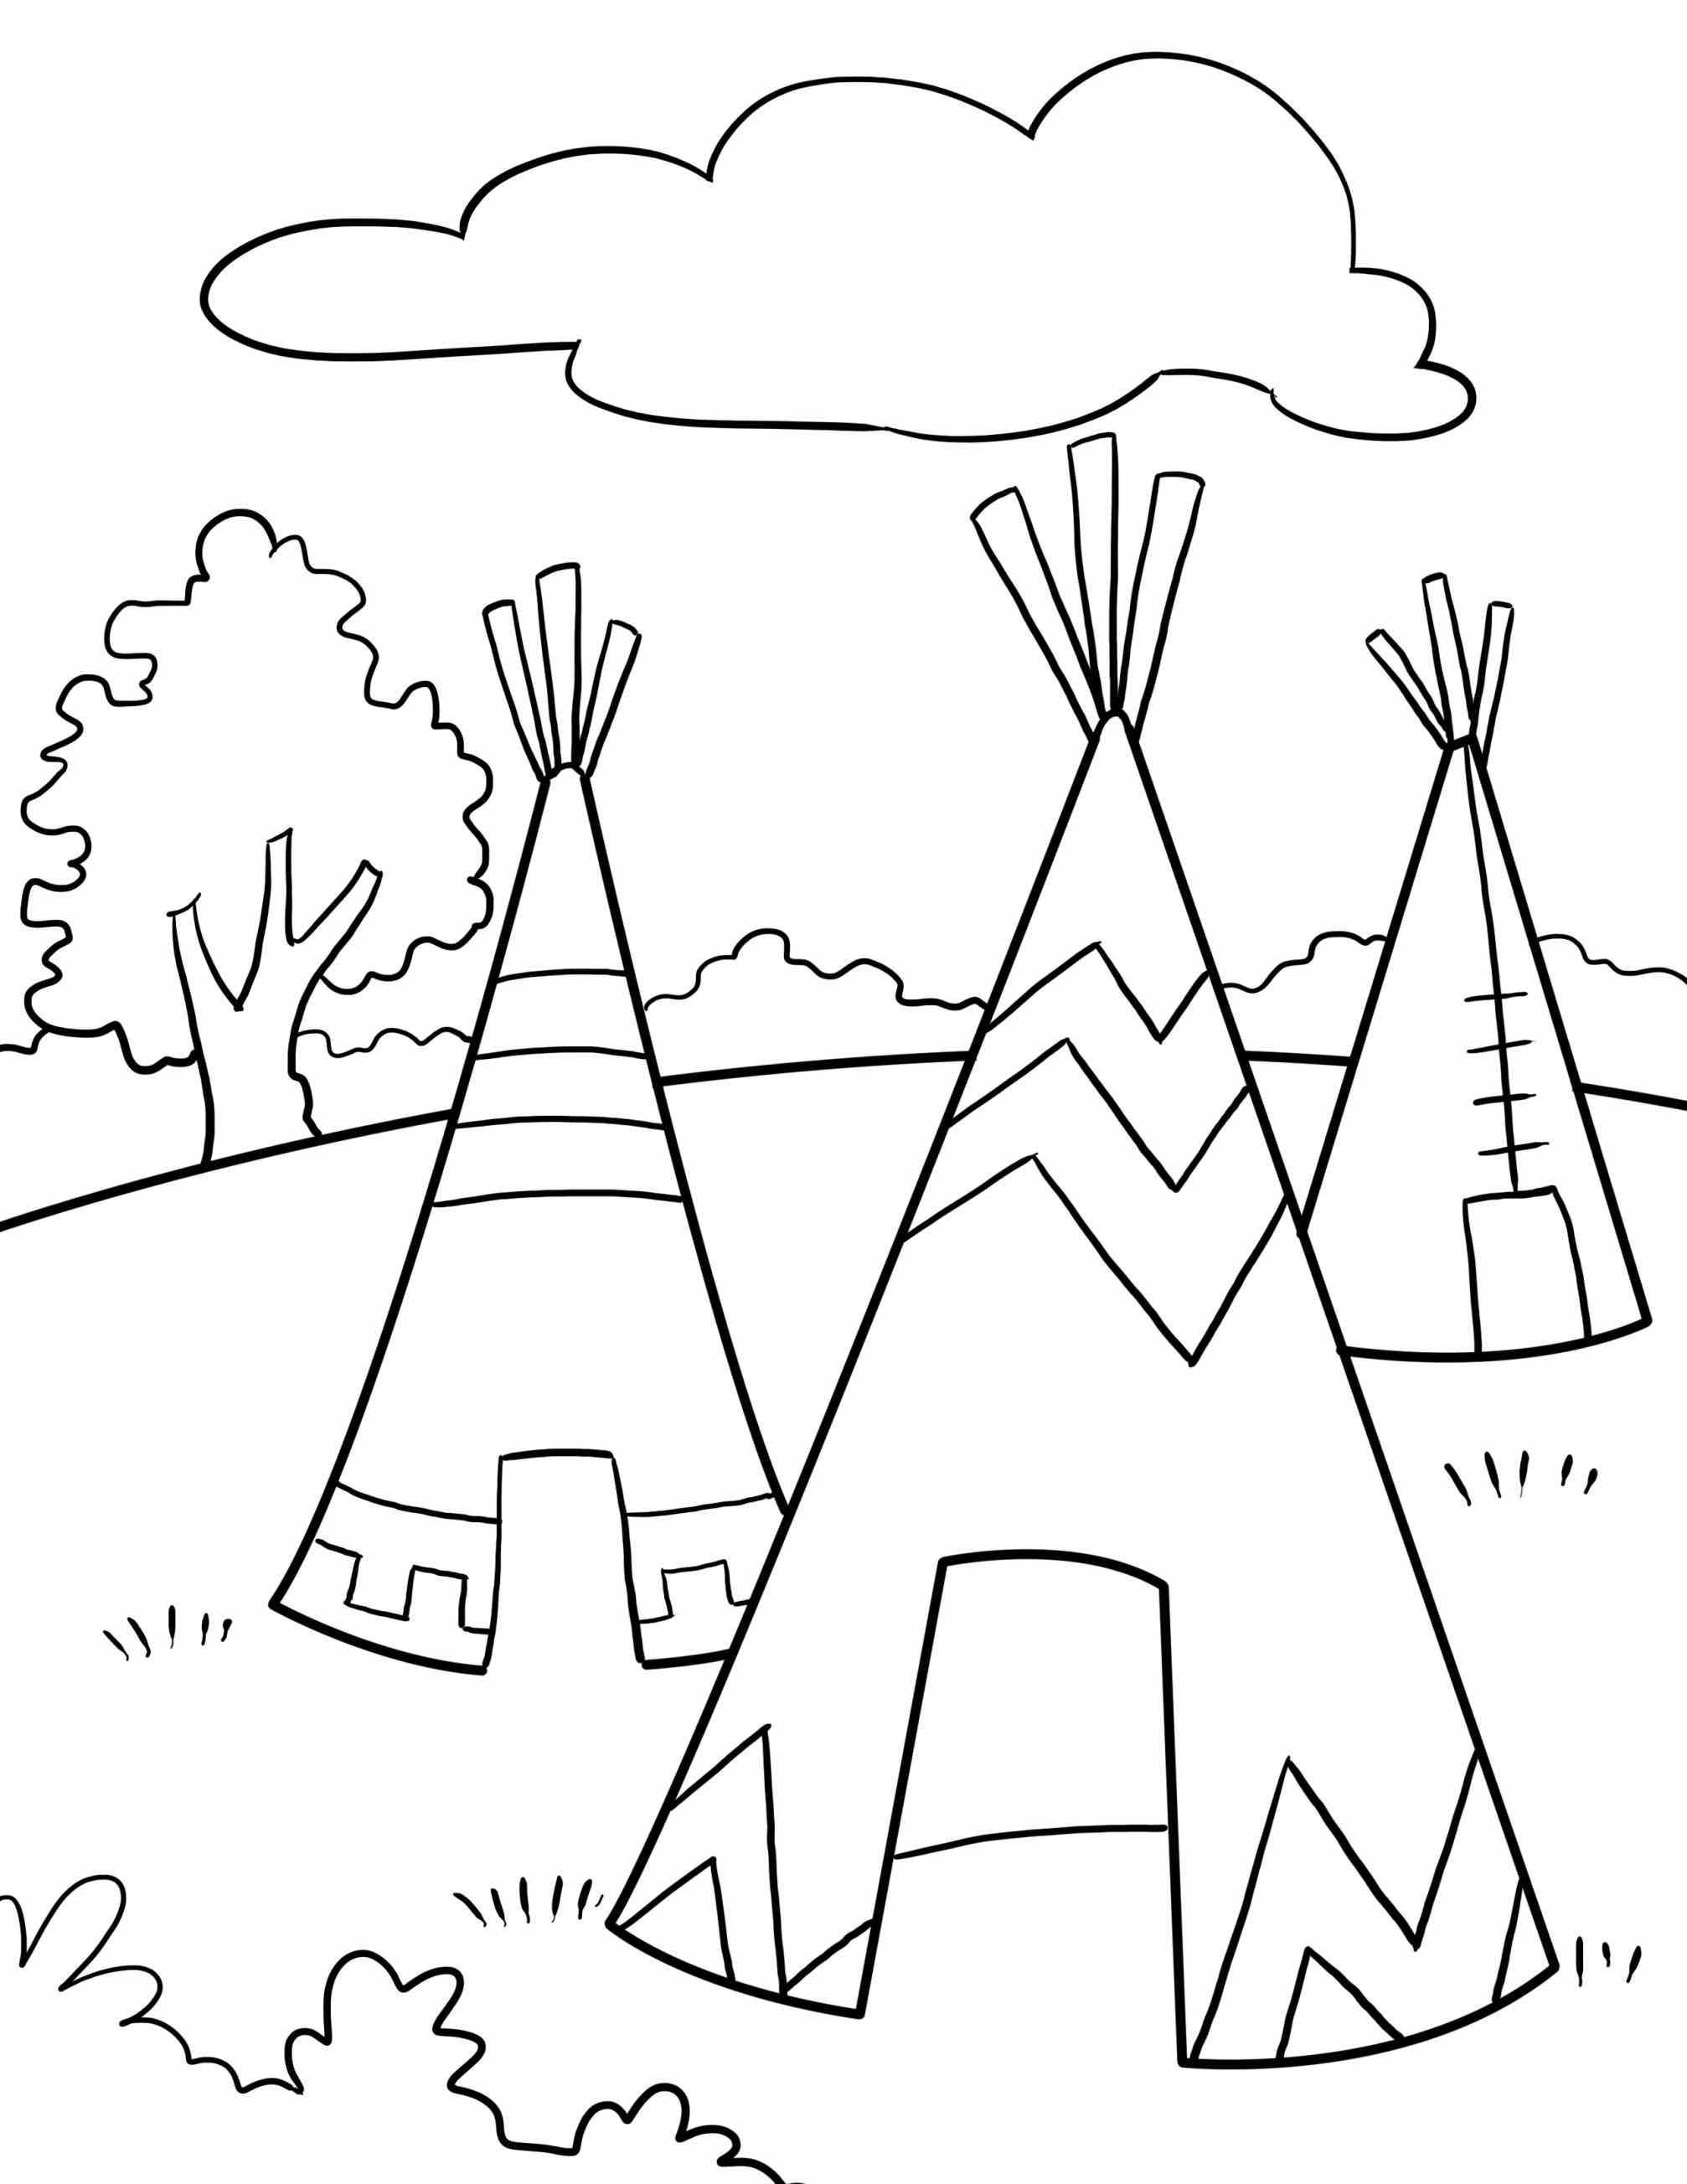 American Drawings Symbols Let Us Learn How To Draw A Chief Indians Native American Drawings Easy Used To Live In Kinderkleurplaten Thema Wilde Westen